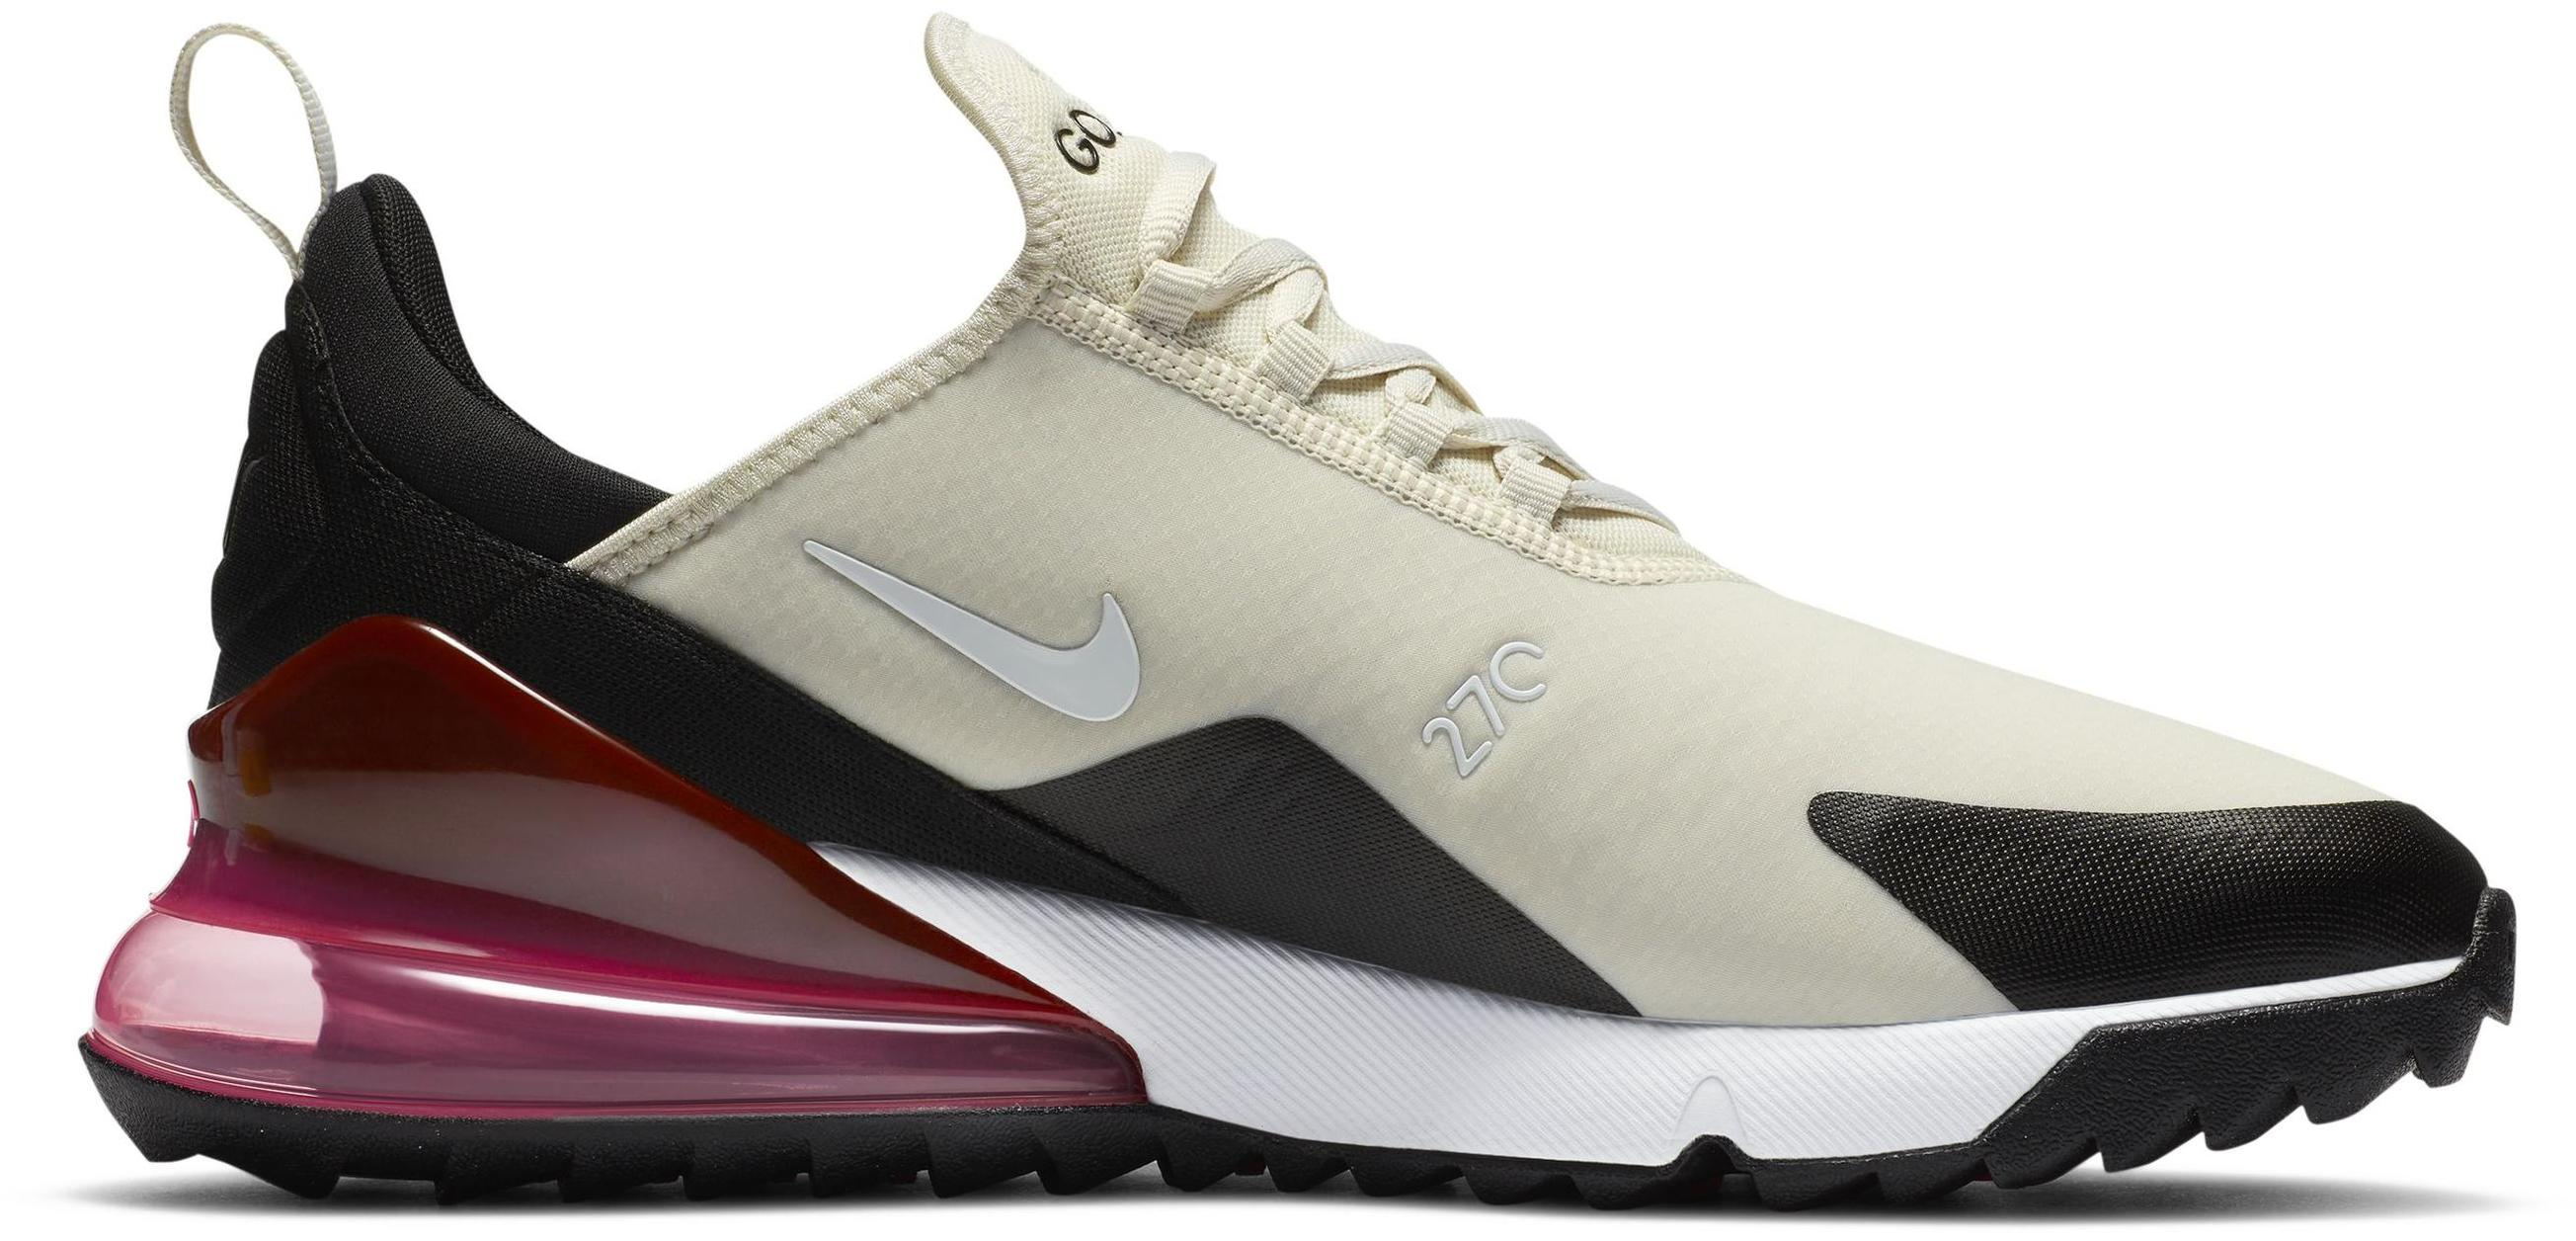 Nike Air Max 270 G Light Bone/Black/Hot Punch/White